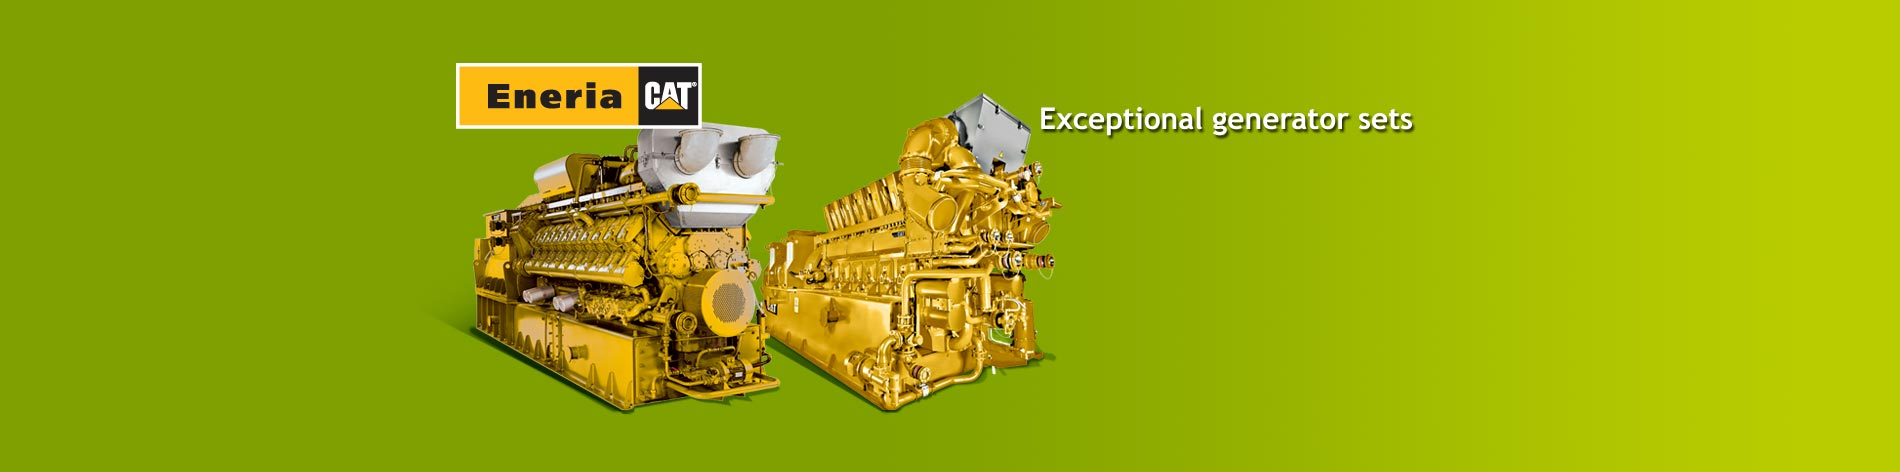 We offer a complete line of gas generator sets adapted for any type of gas with outputs from 60 kWe to 4,500 kWe.